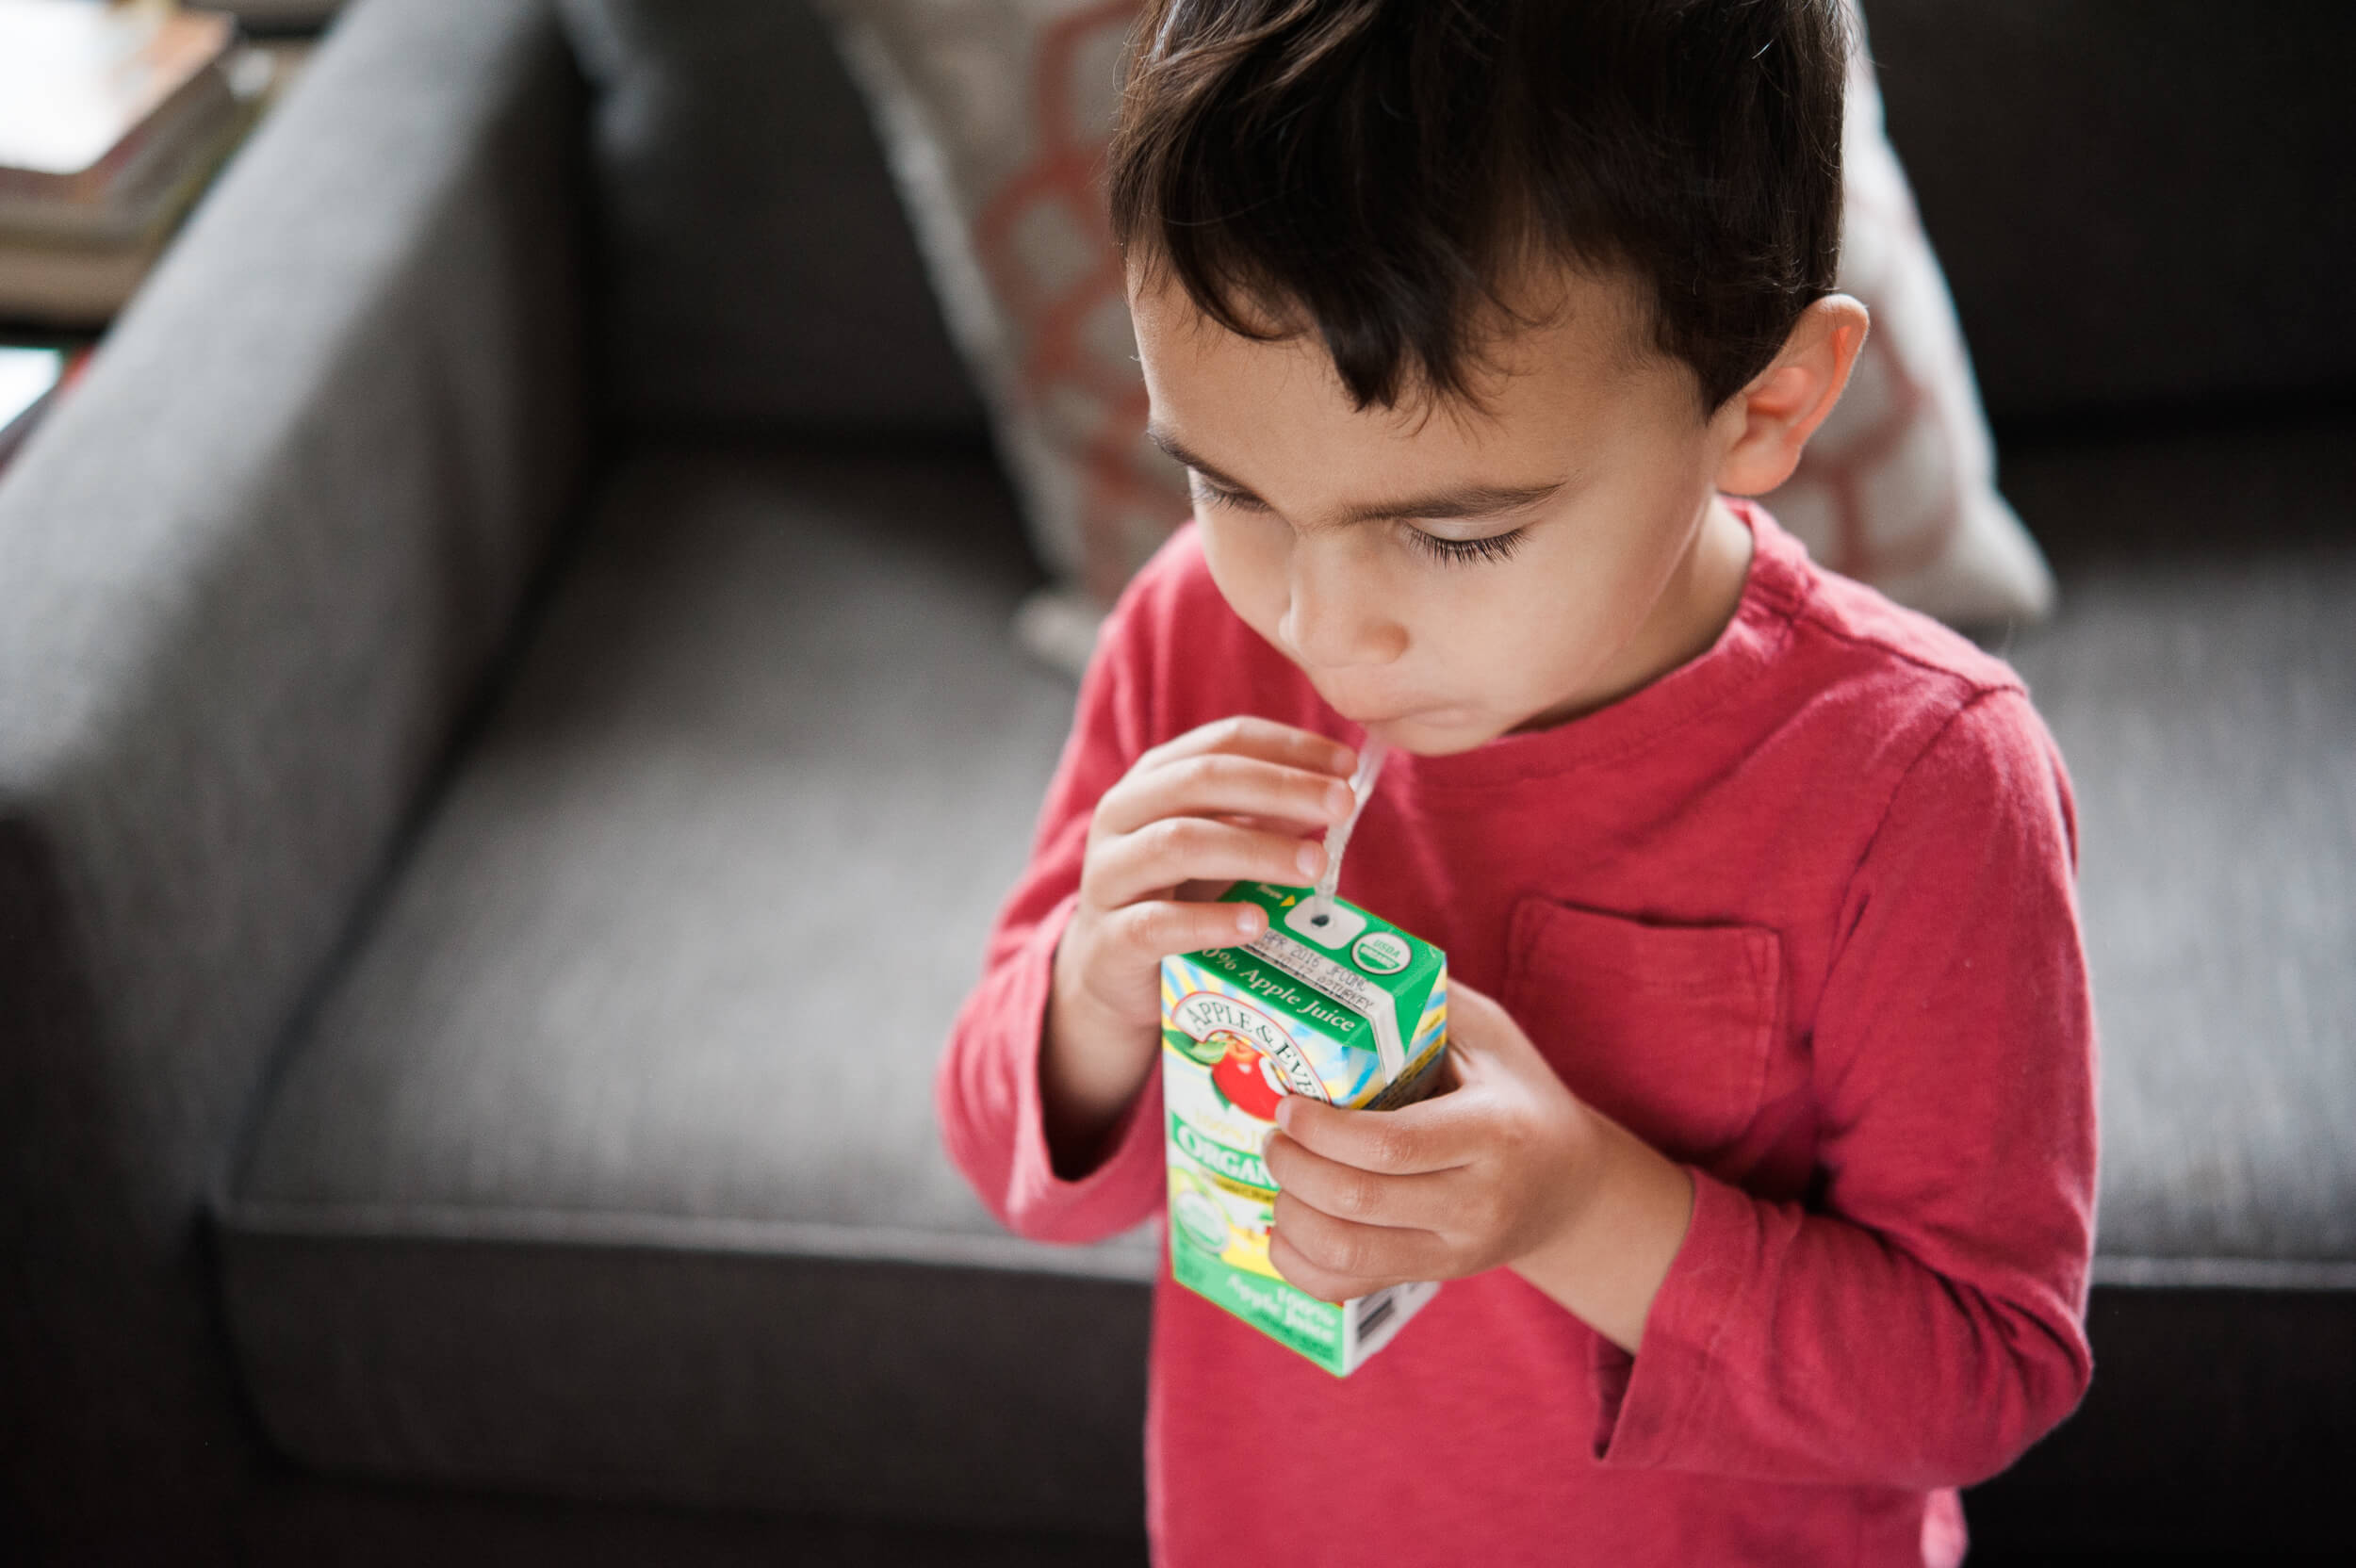 Kid drinking juice box Brooklyn family photographer lifestyle session in Cobble Hill neighborhood apartment by Lindsey Victoria Photography